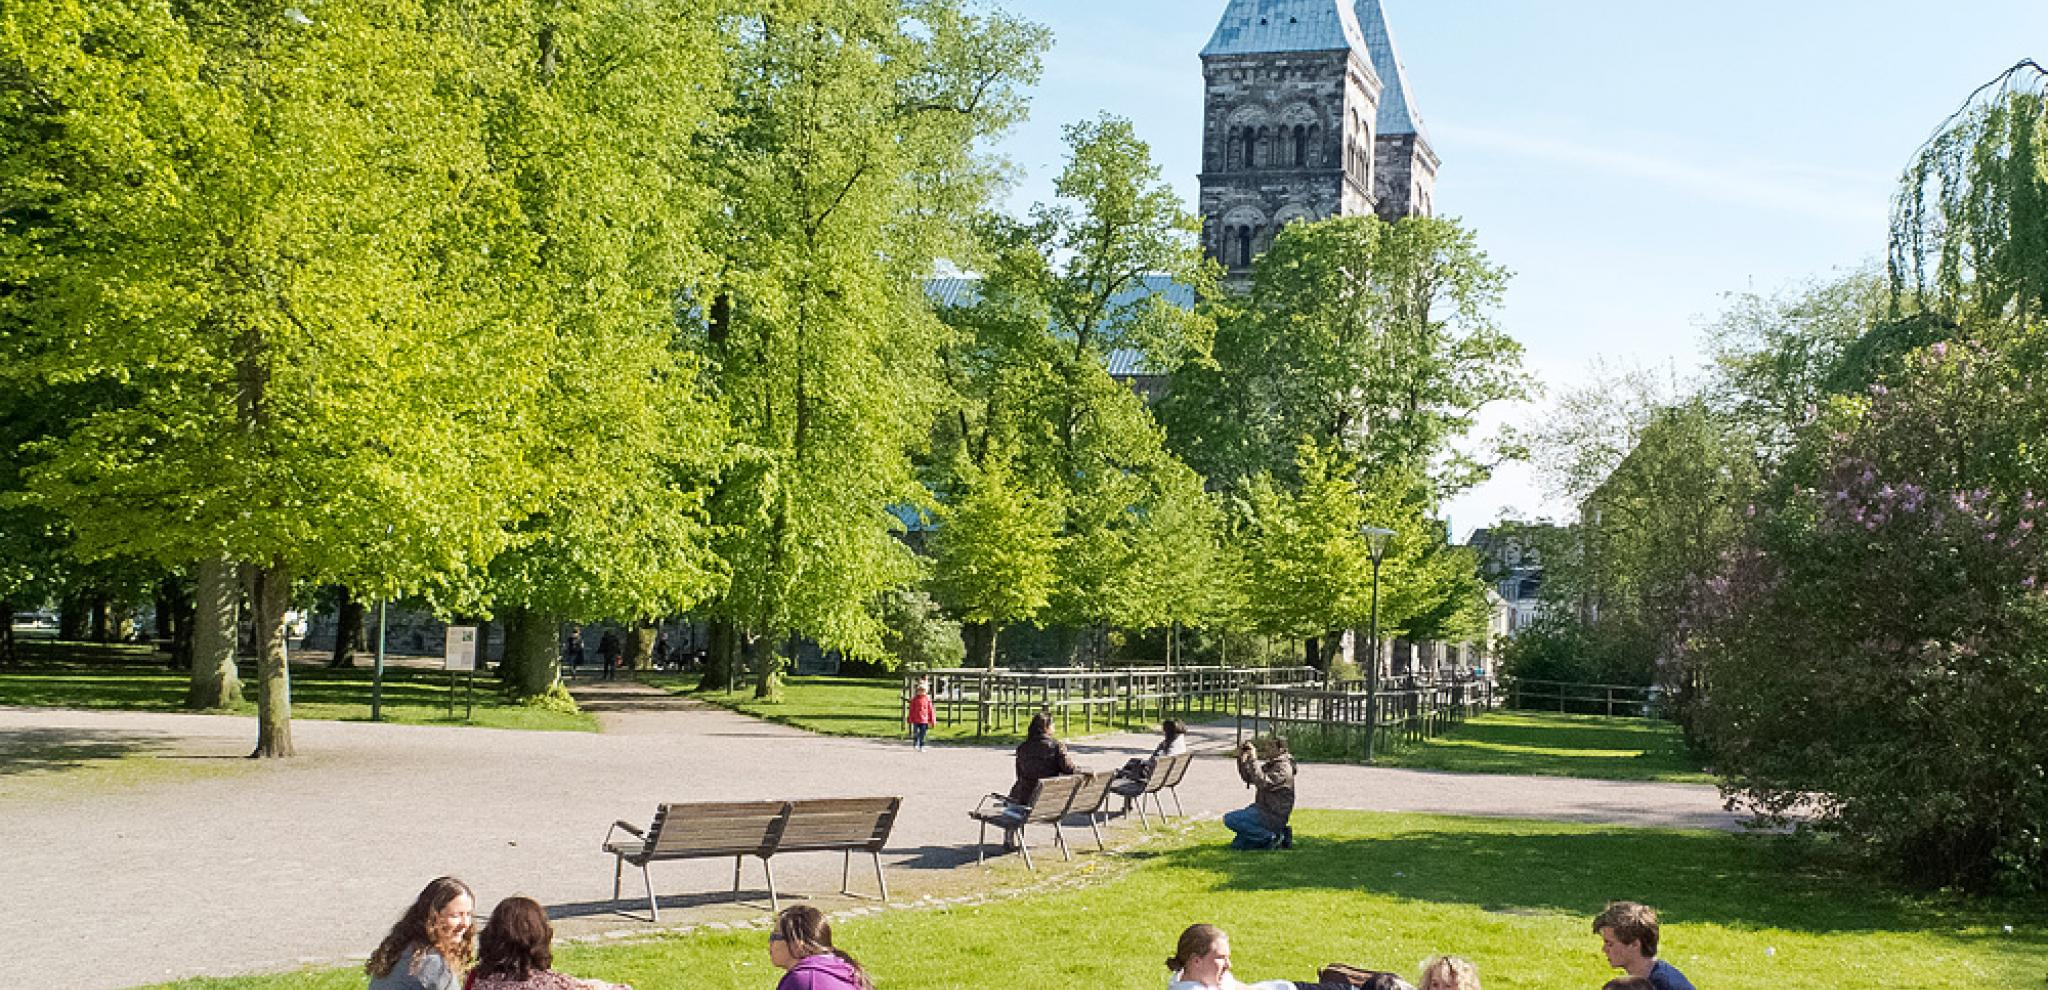 People having a picnic by Domkyrkan in Lund © Leif Johansson, Xrayfoto